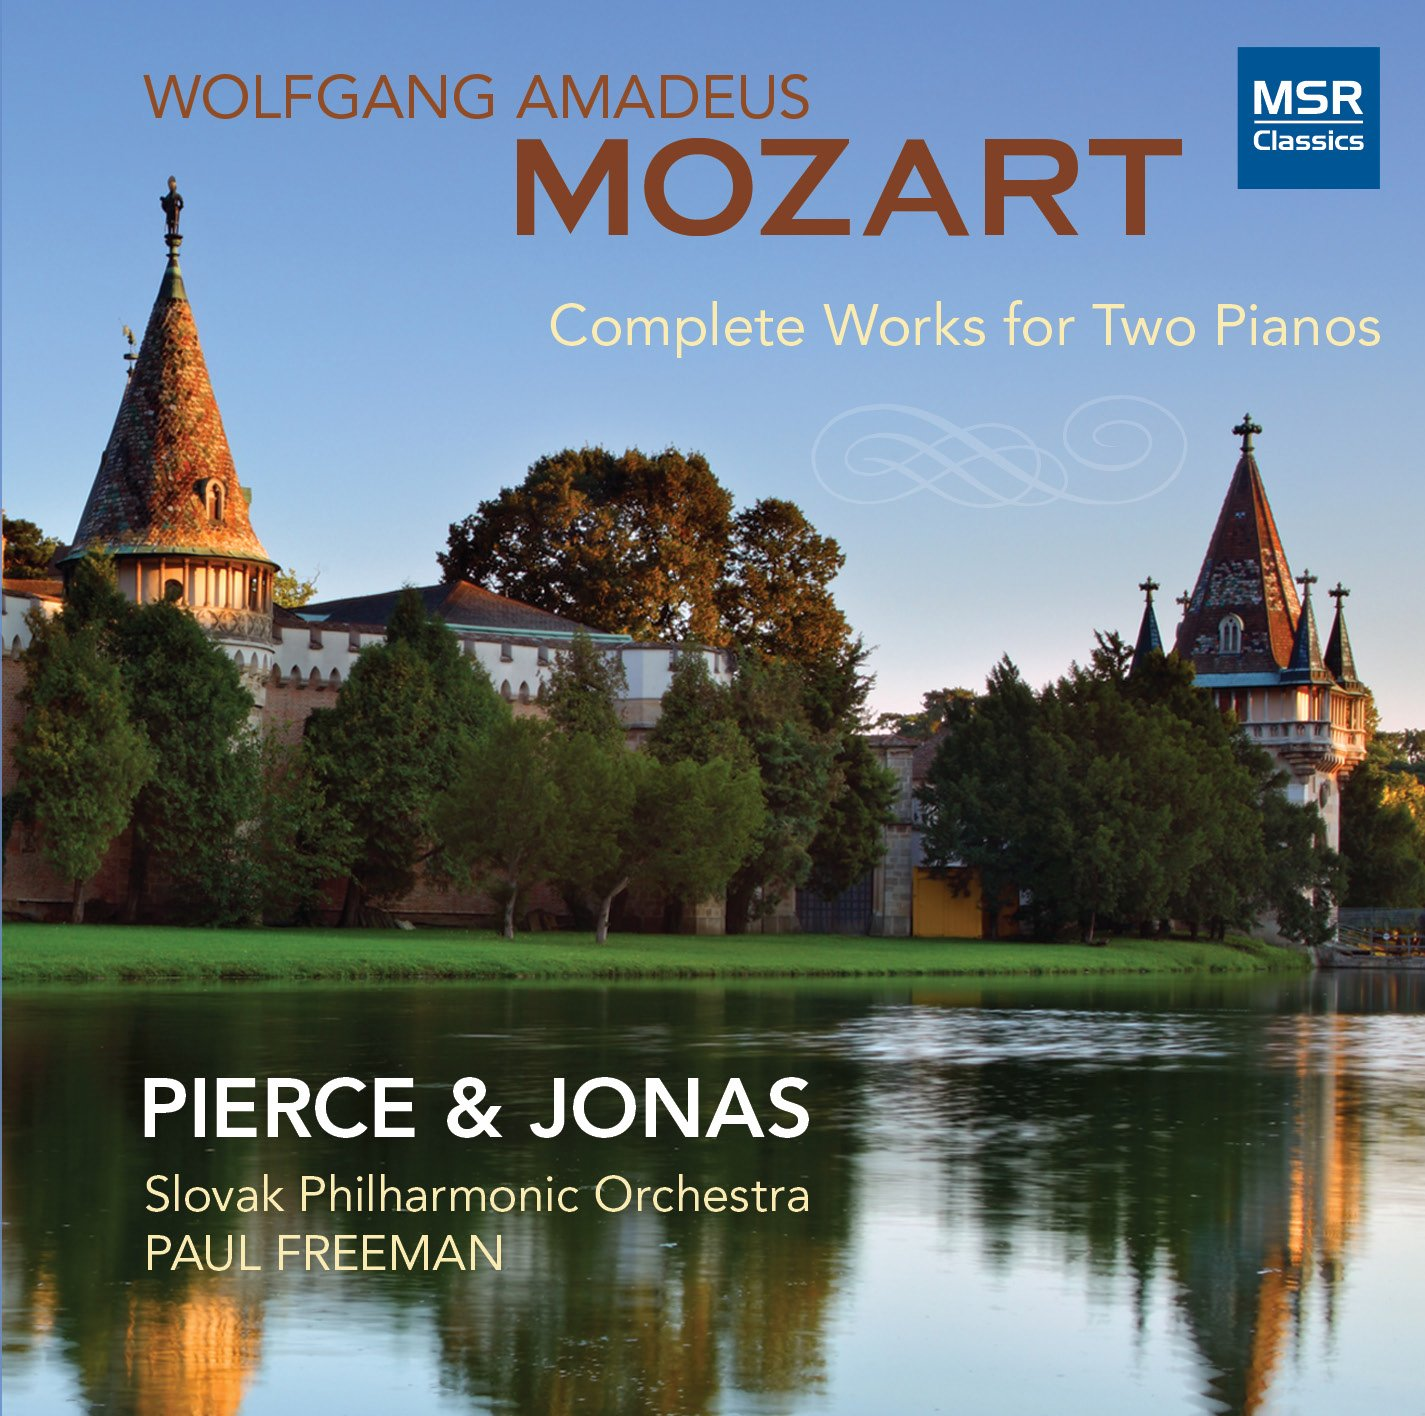 Mozart: Complete Works for Two Pianos - Concerto in E-flat, K.365; Sonata in D, K.448; Adagio and Fugue in C minor, K.546/K.426; Larghetto and Allegro in E-flat major by Msr Classics